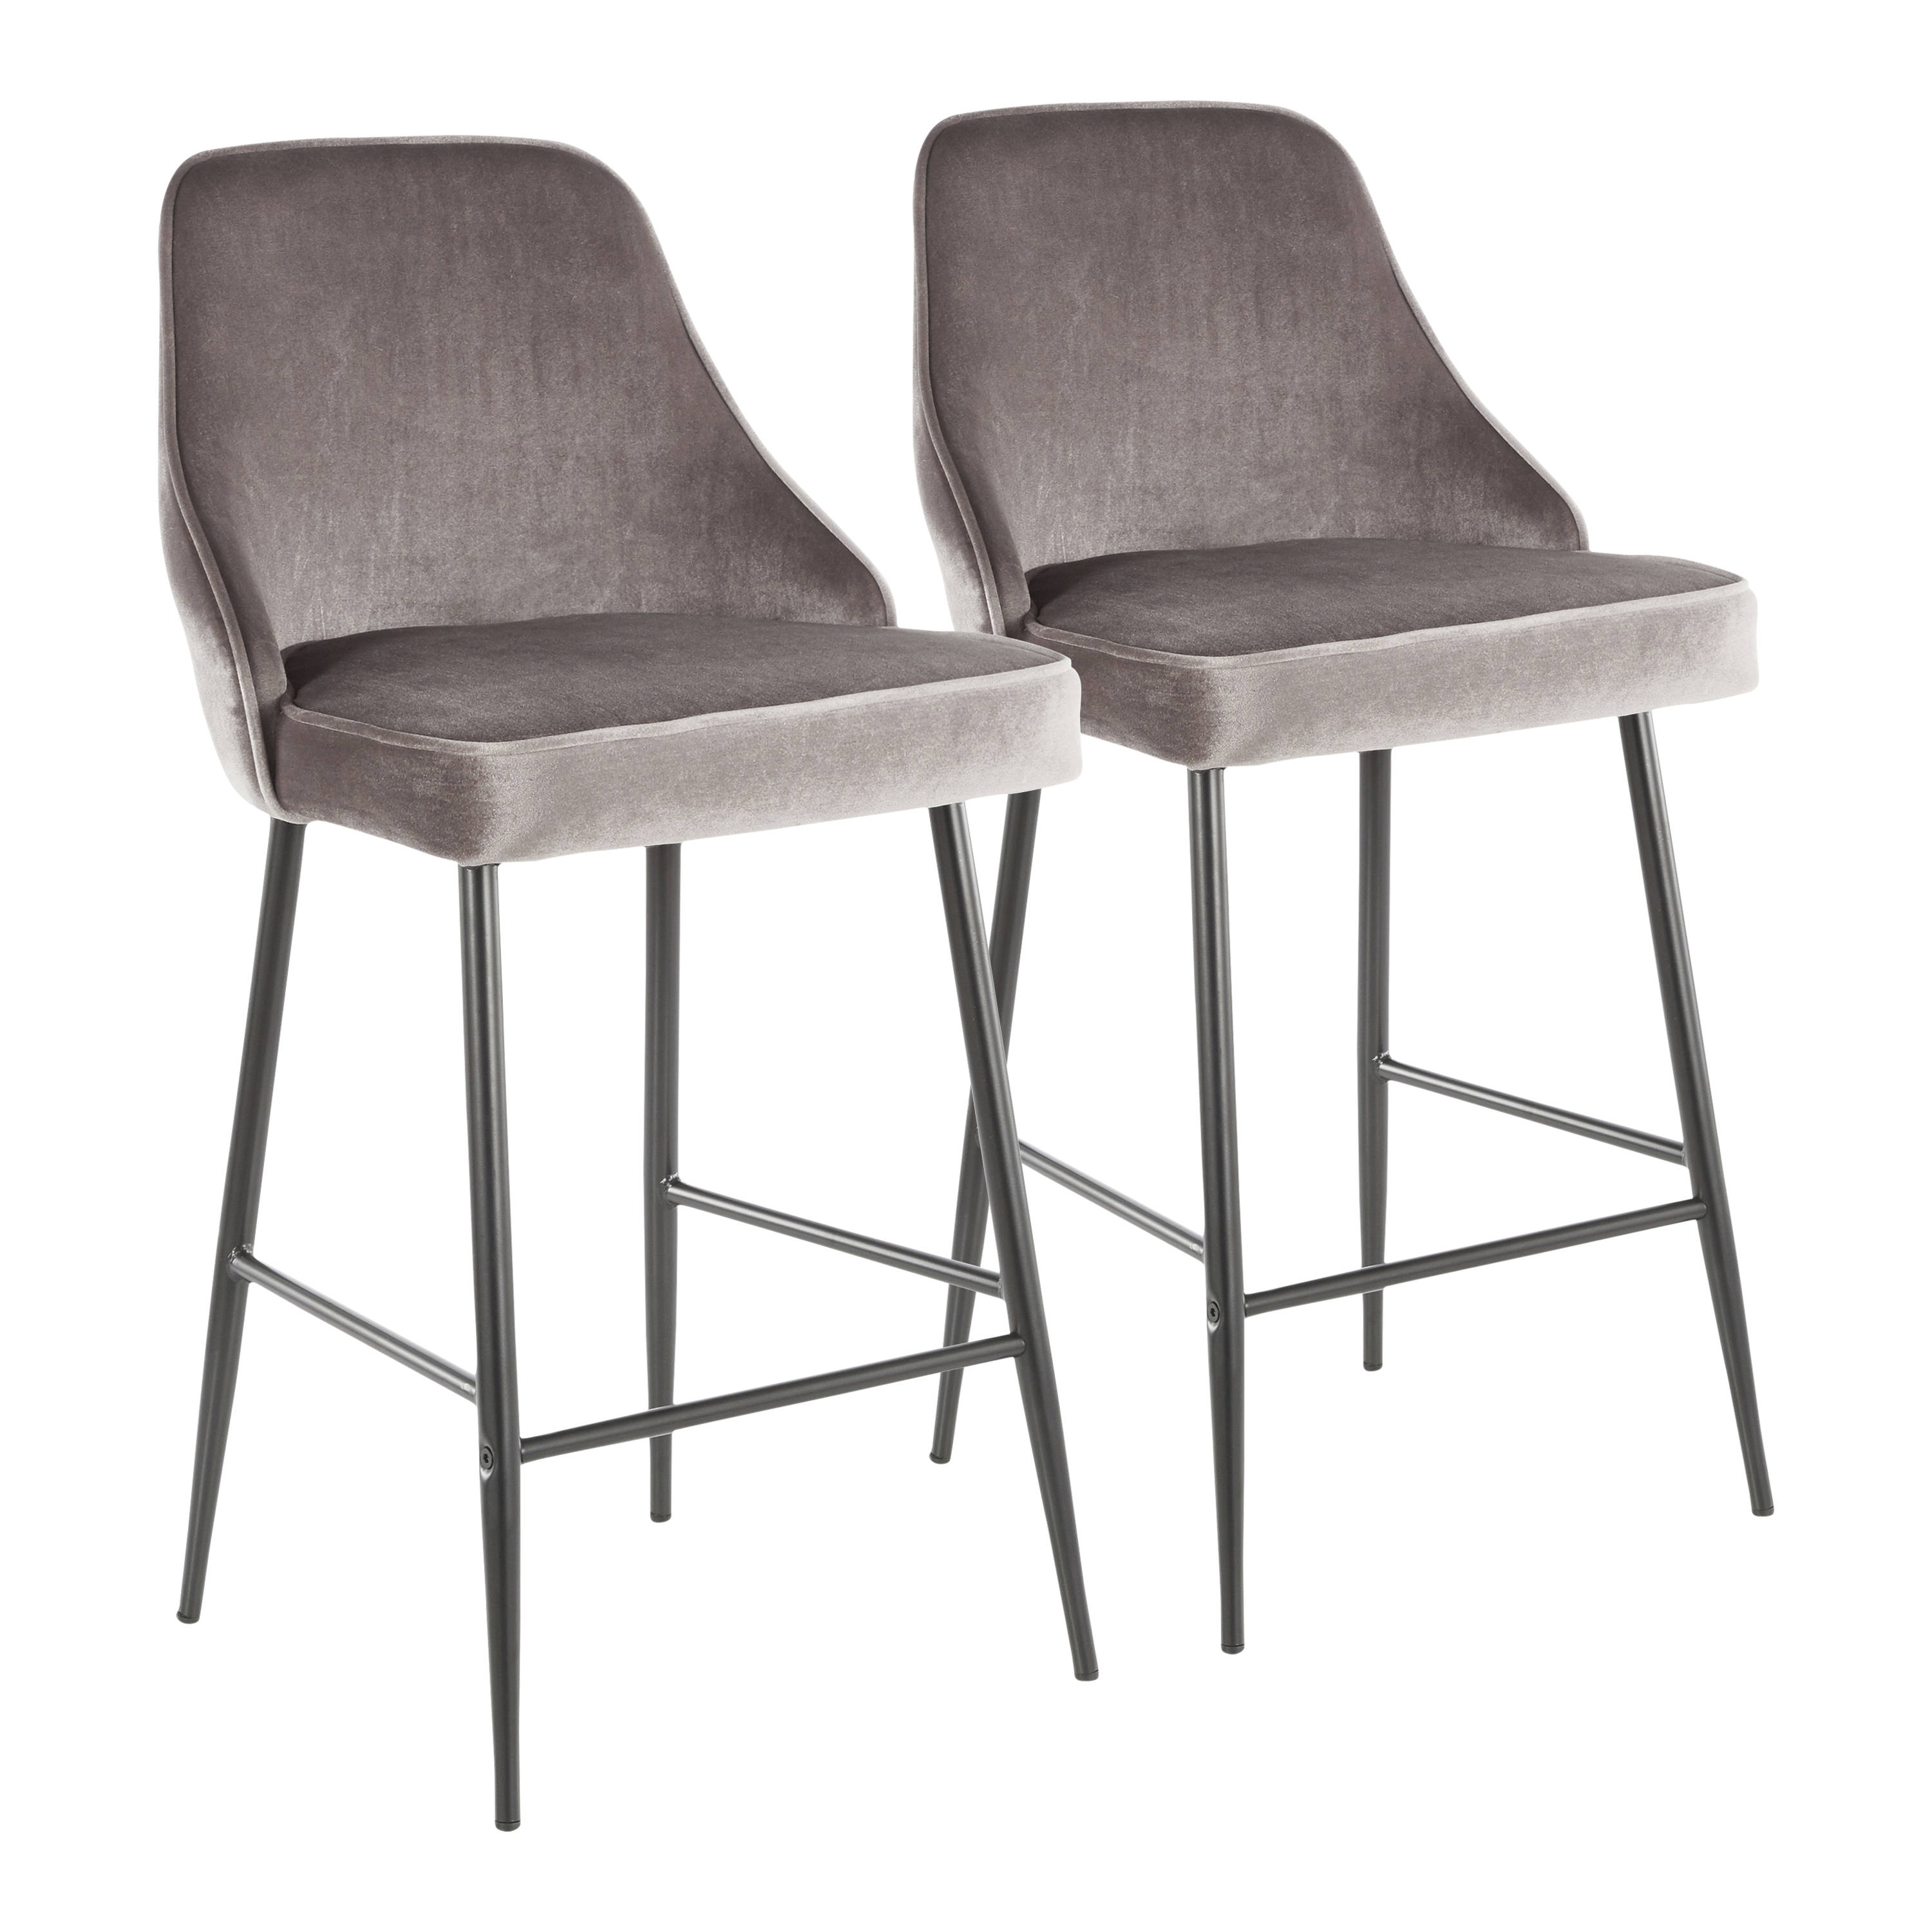 Peachy 2 Lumisource Marcel Black Silver Counter Stools Alphanode Cool Chair Designs And Ideas Alphanodeonline